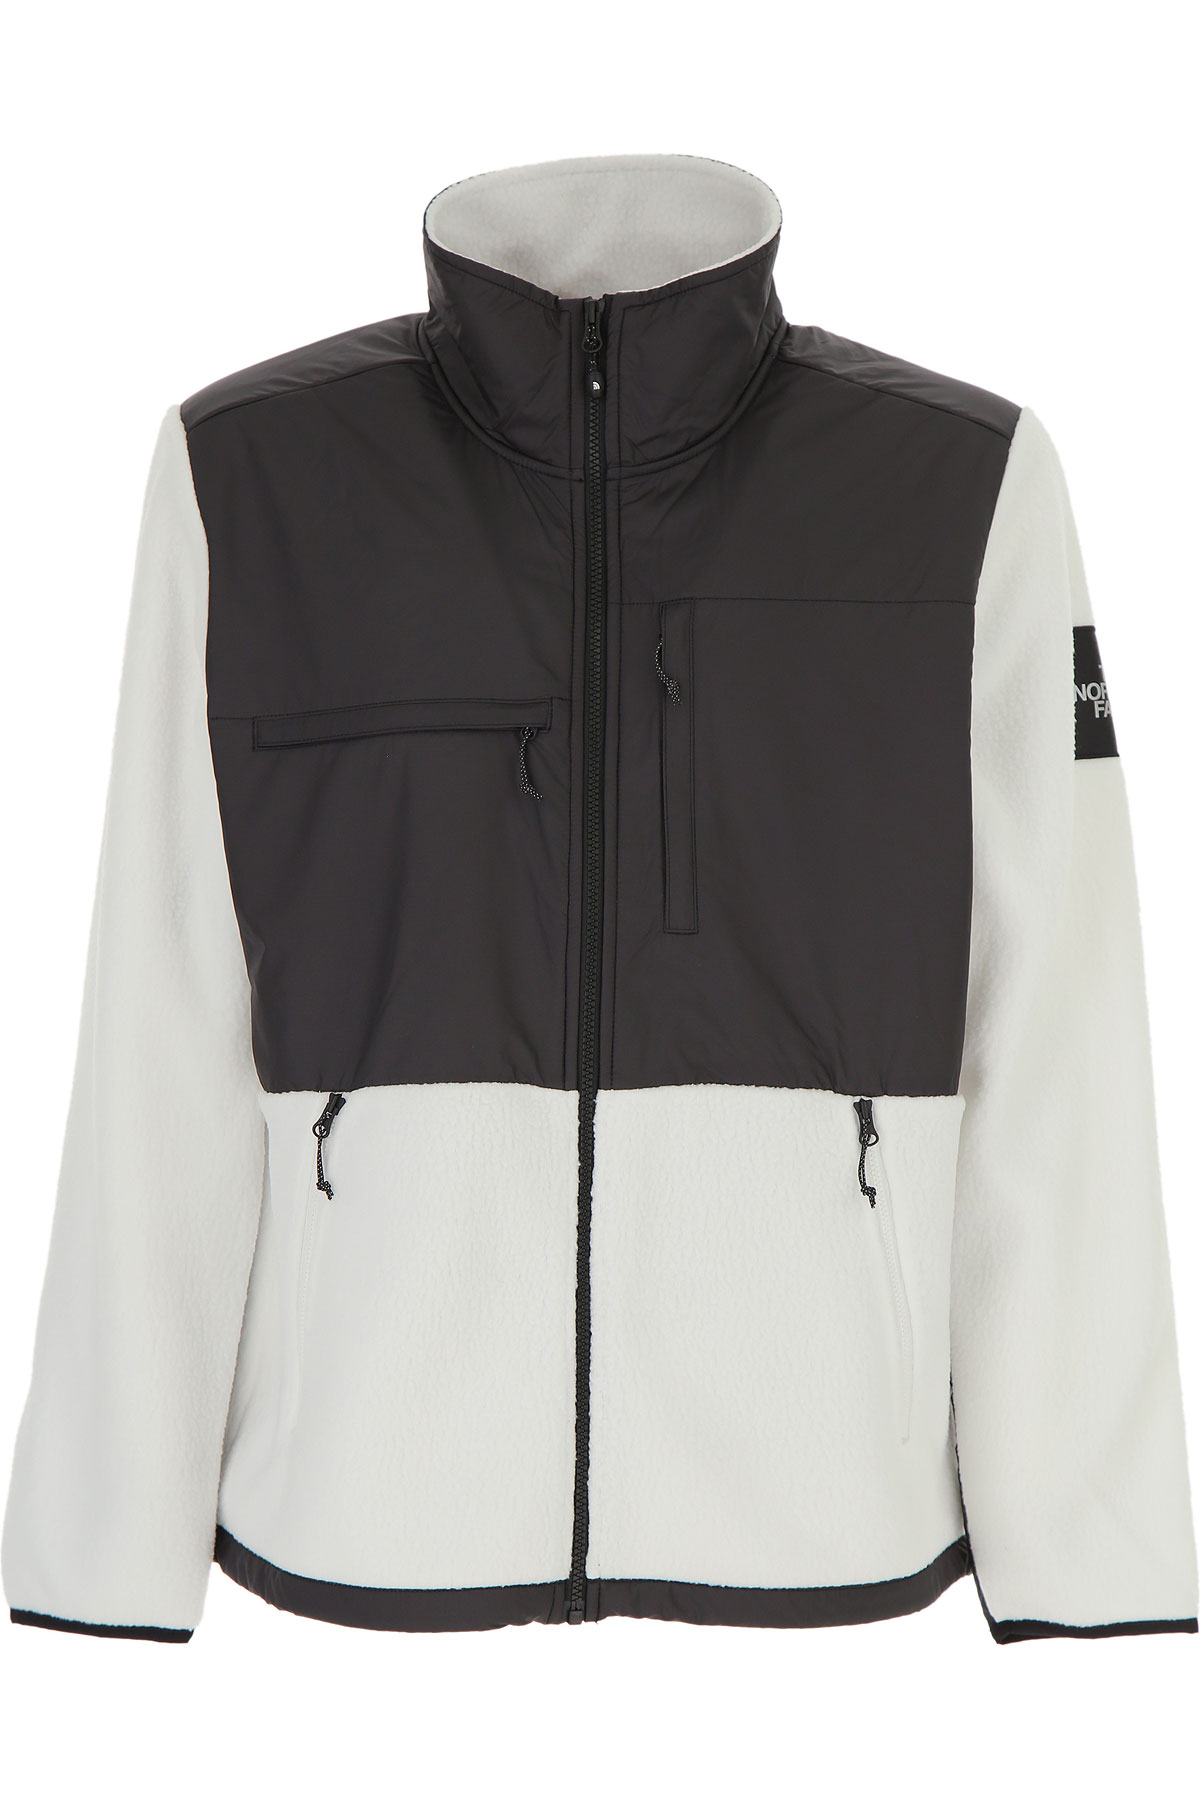 The North Face Jacket for Men On Sale, Black, polyestere, 2019, L M S